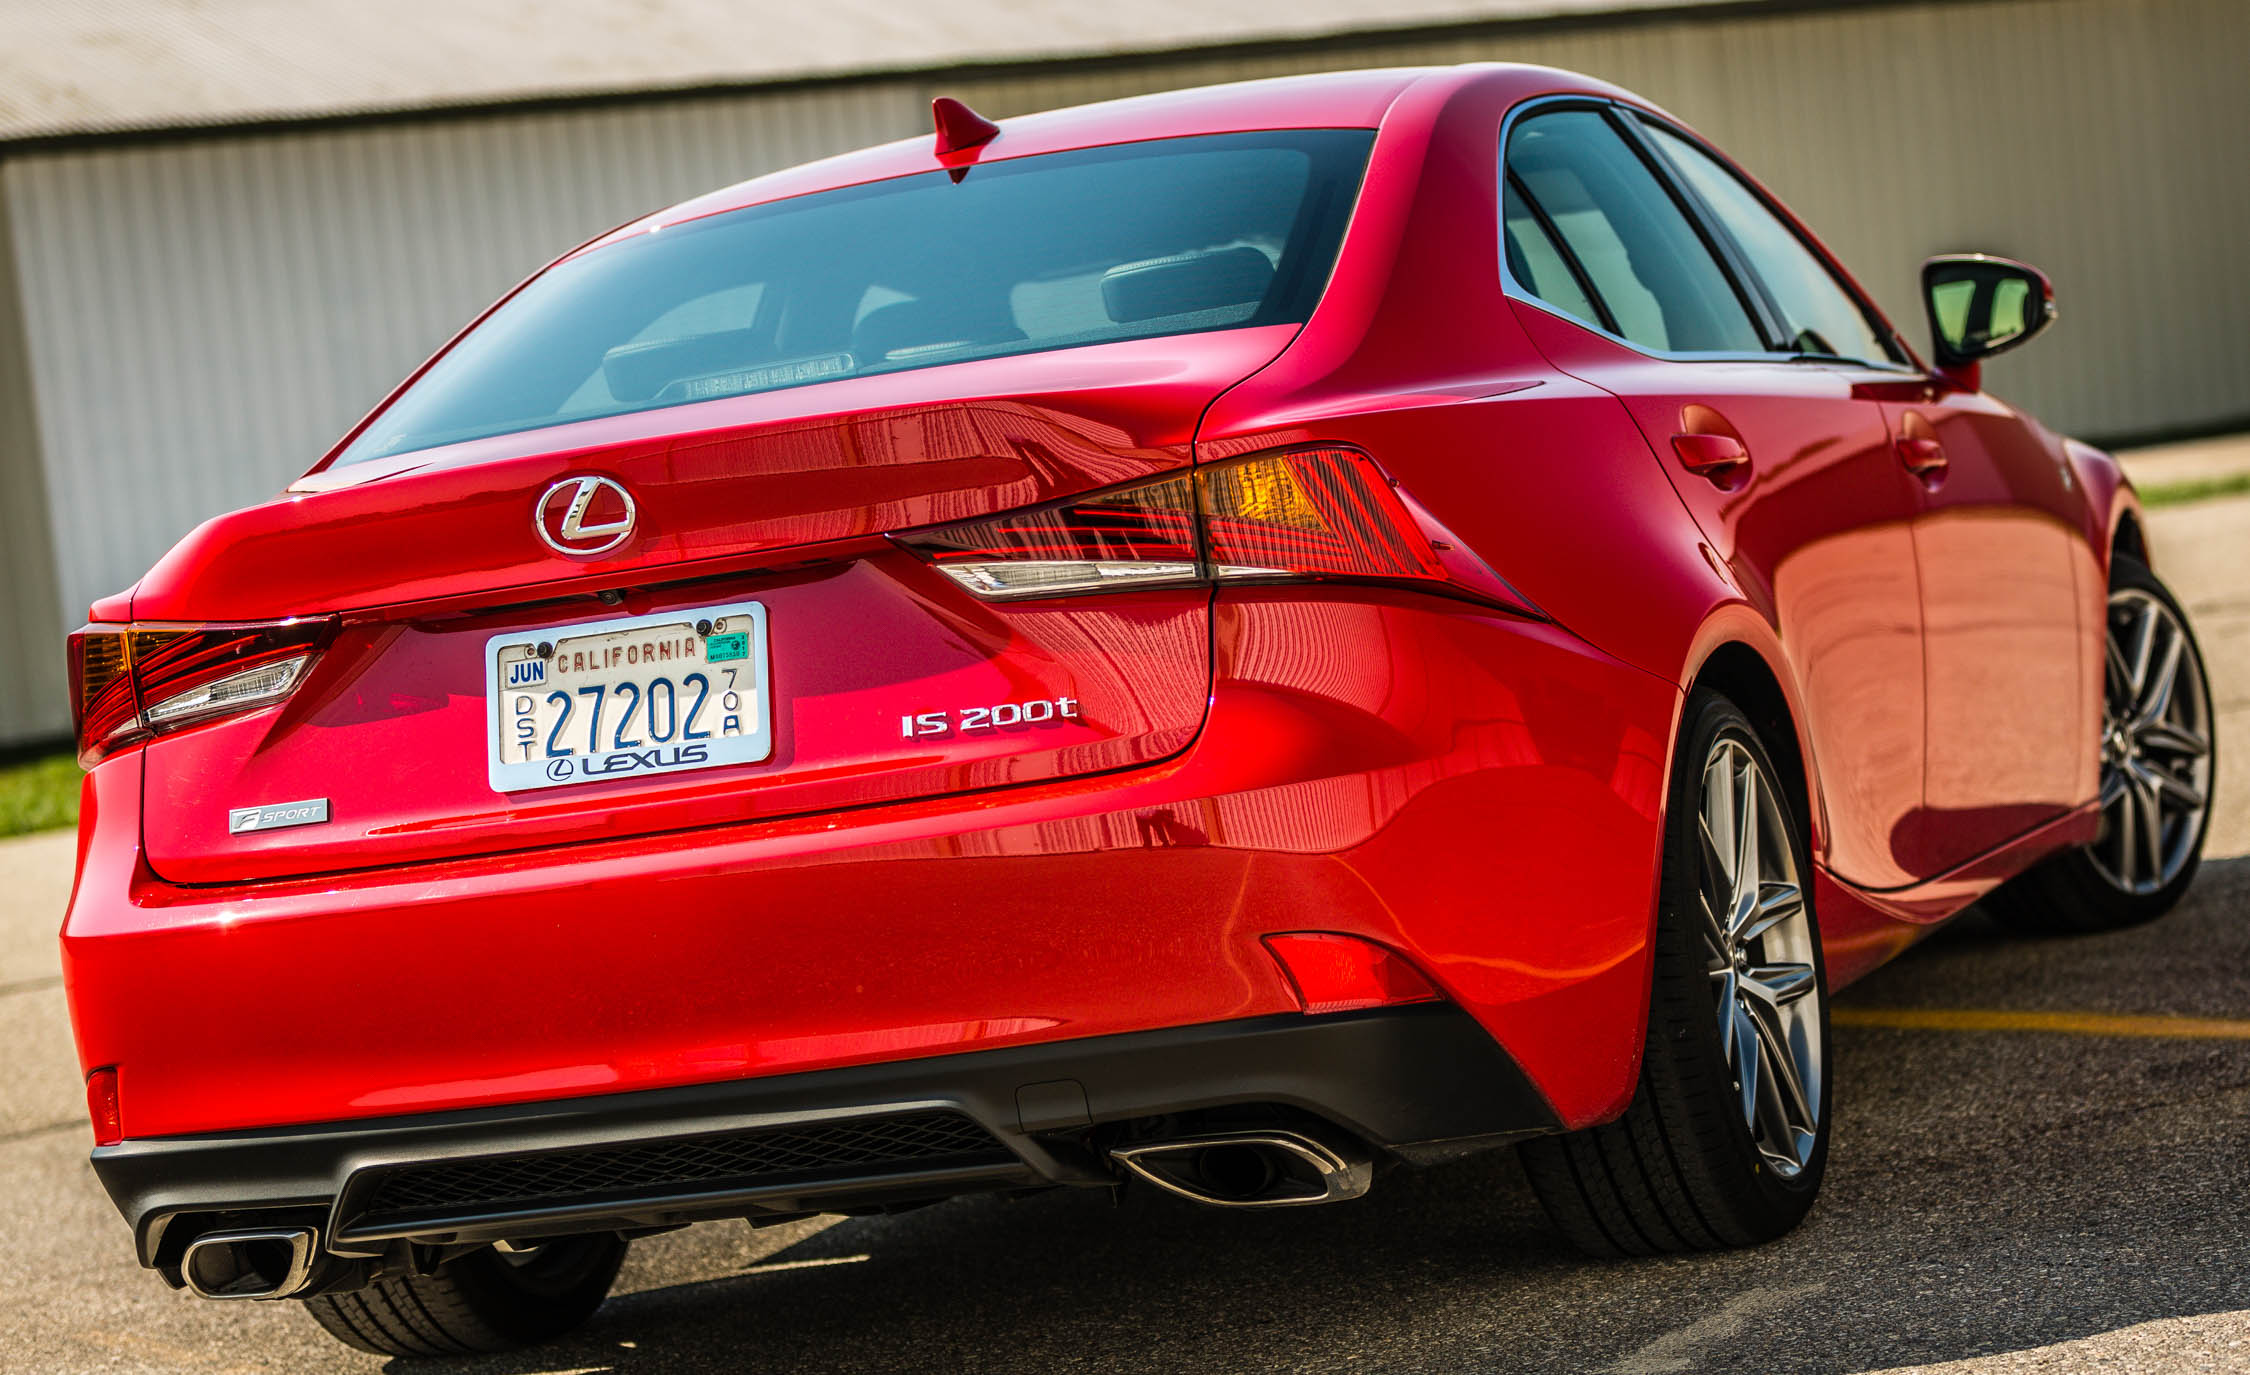 2017 Lexus IS 200t F Sport Red Exterior Rear (View 13 of 29)